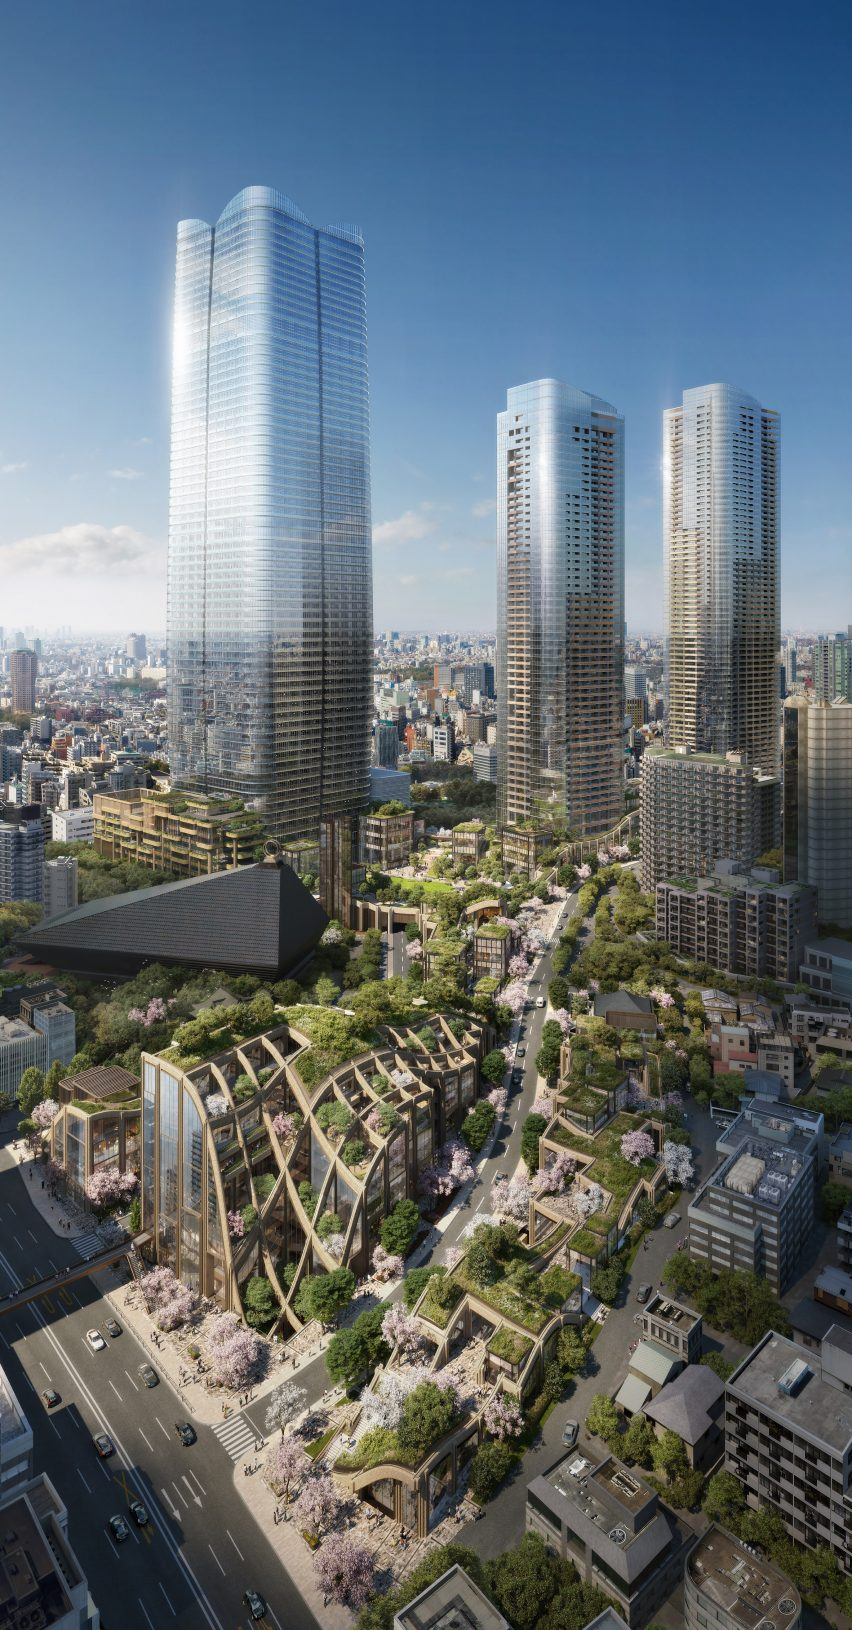 Toranomon-Azabudai project by Heatherwick Studio